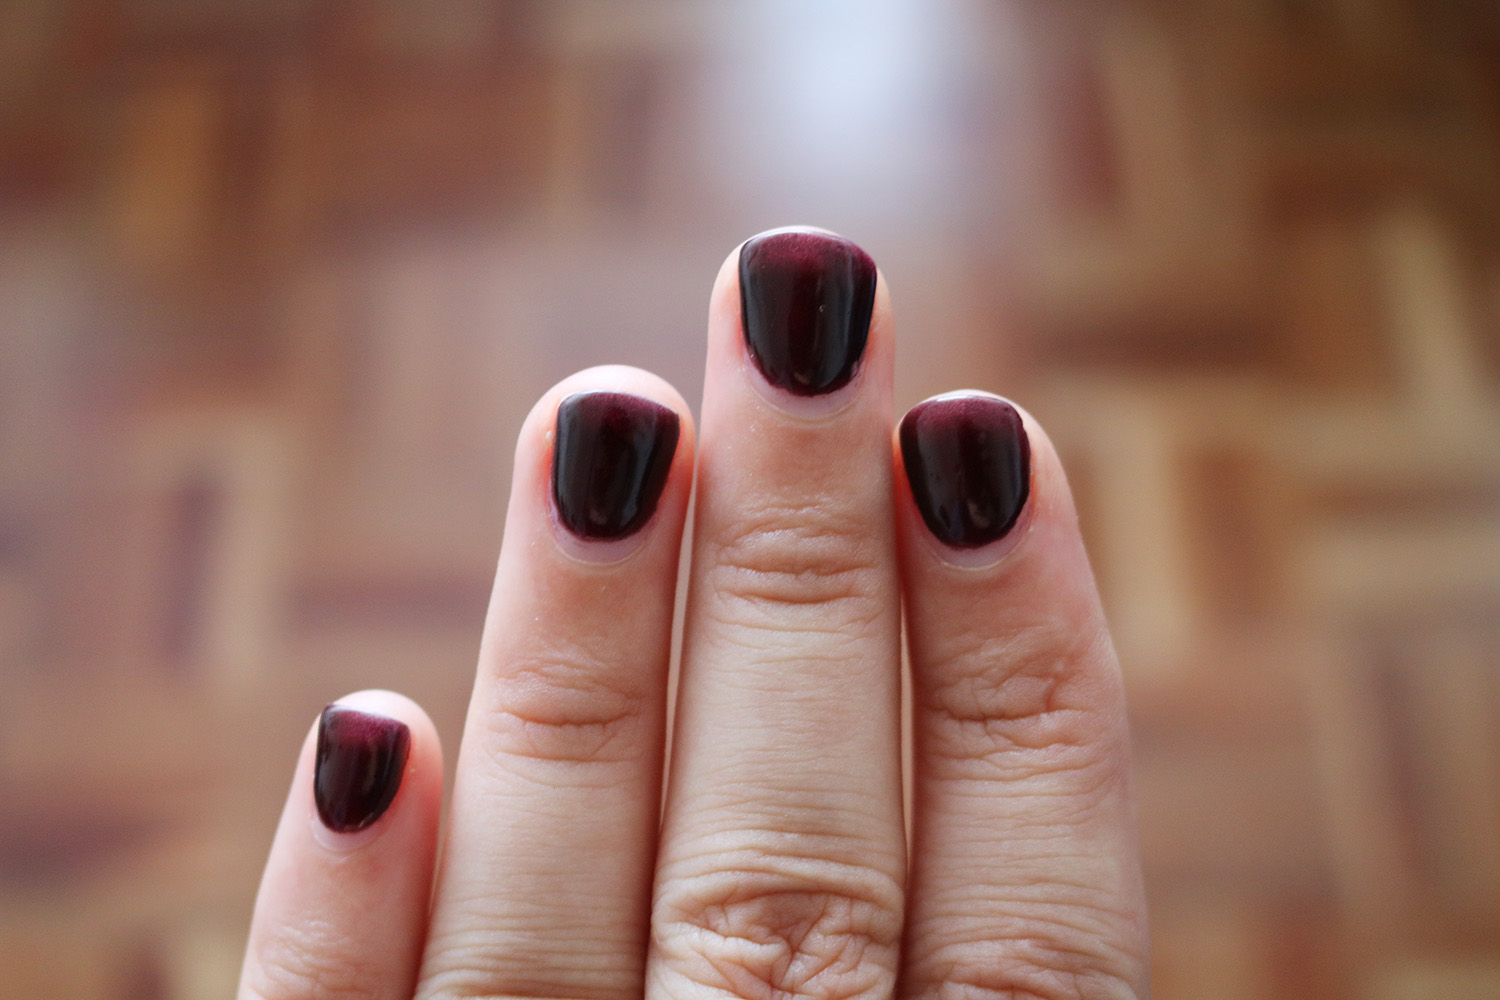 application on nails so it will not smudge